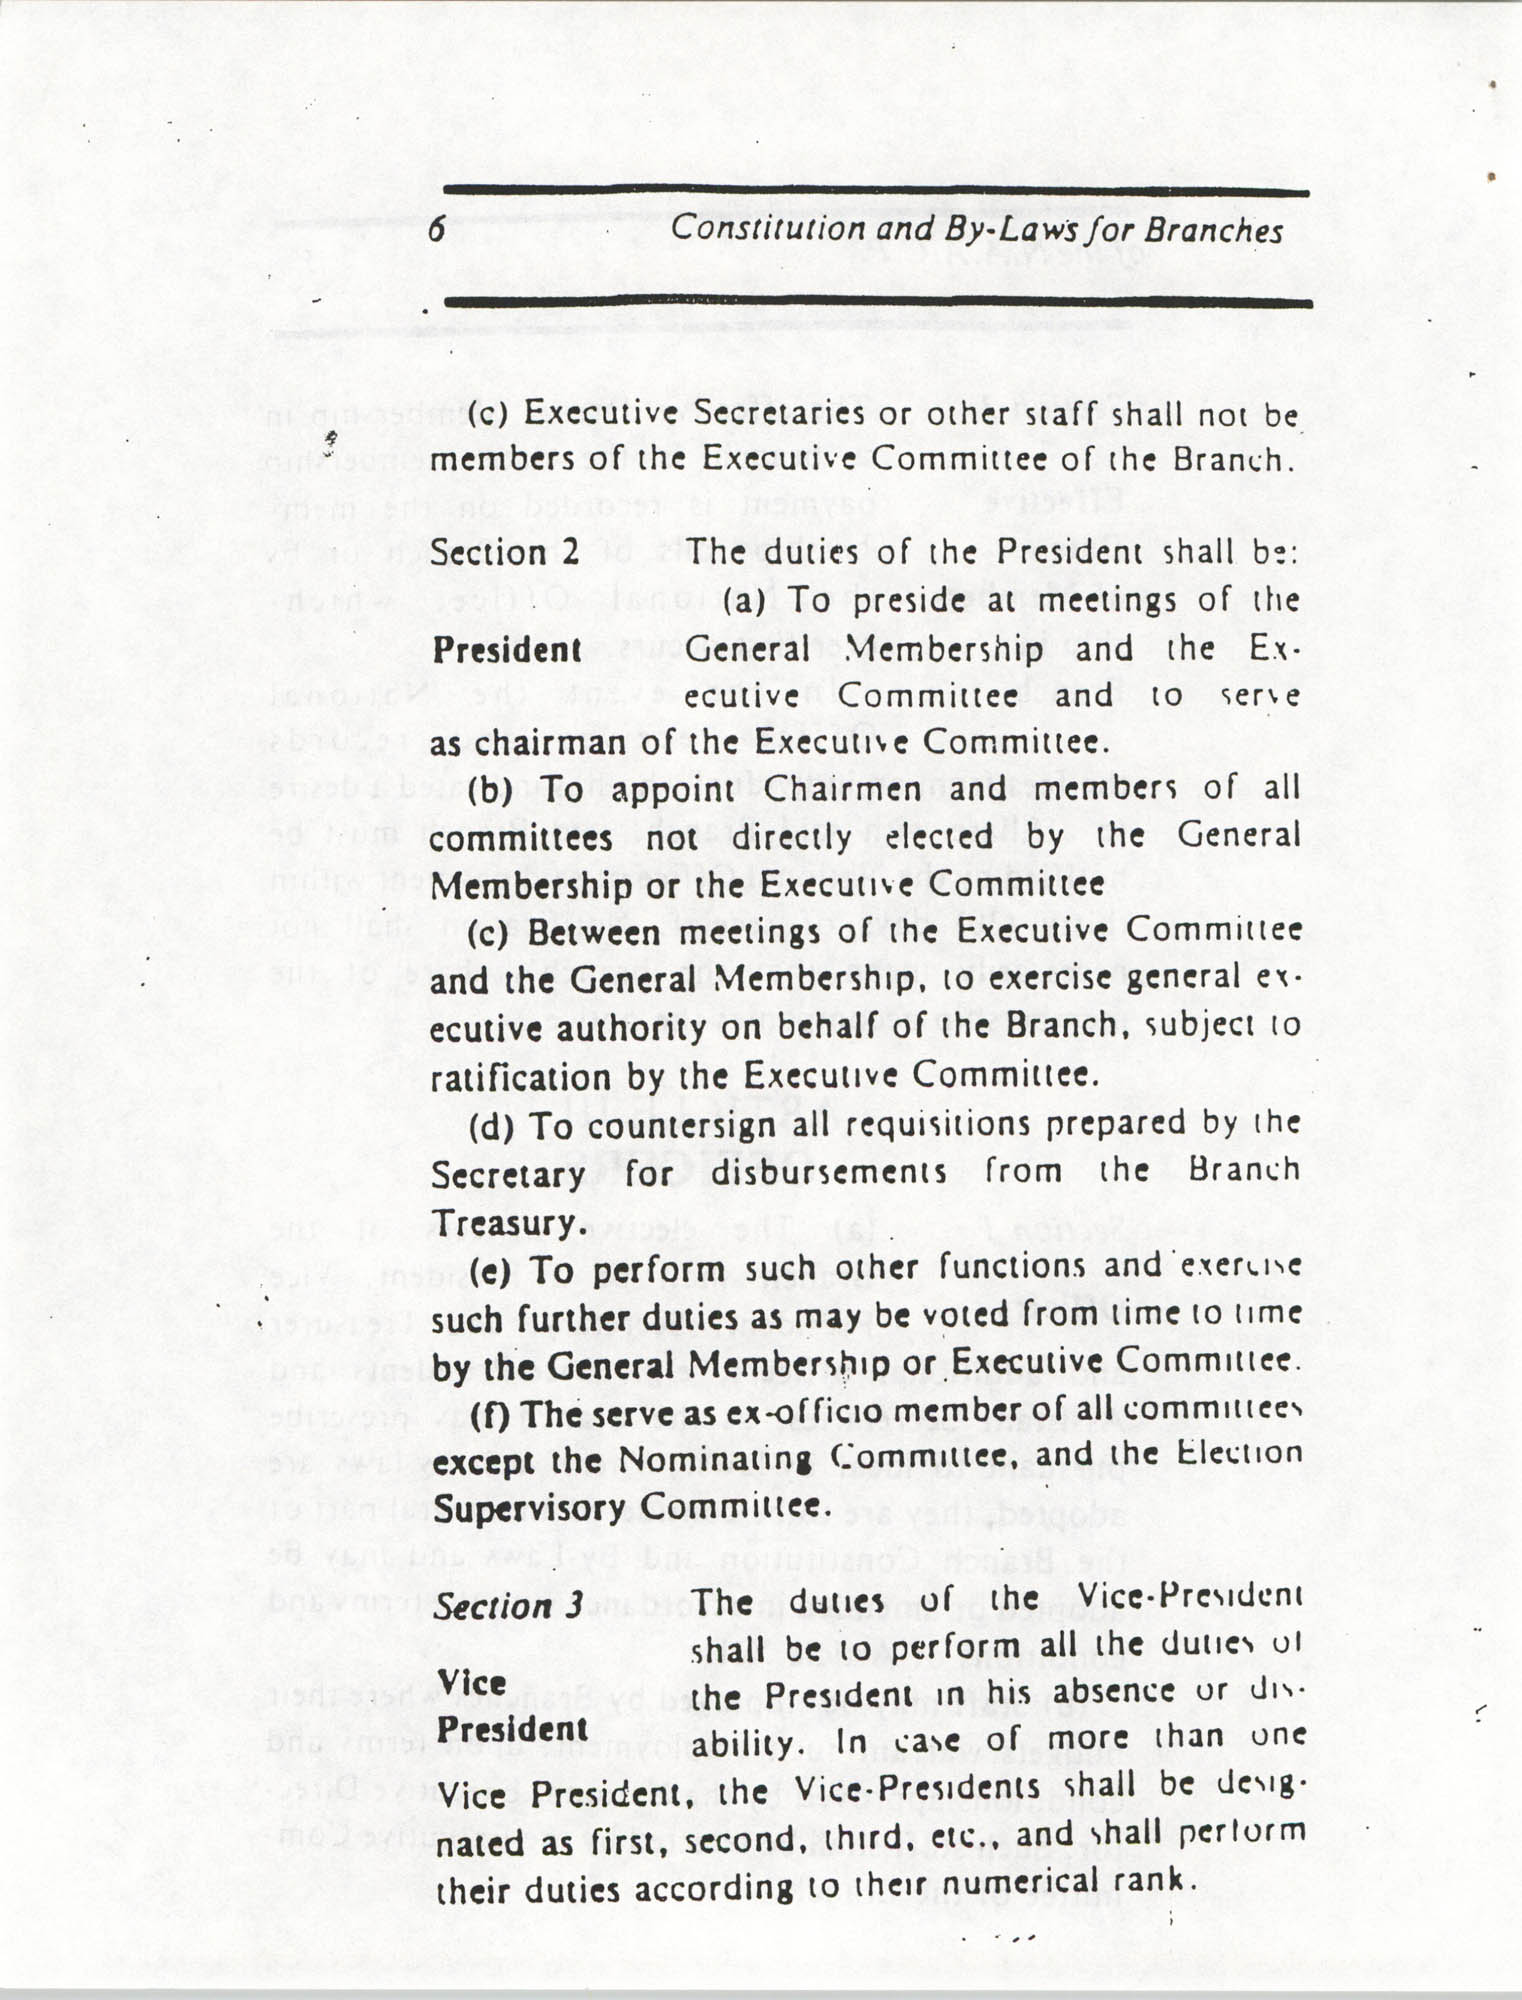 Constitution and By-Laws for Branches of the NAACP, March 1992, Page 6